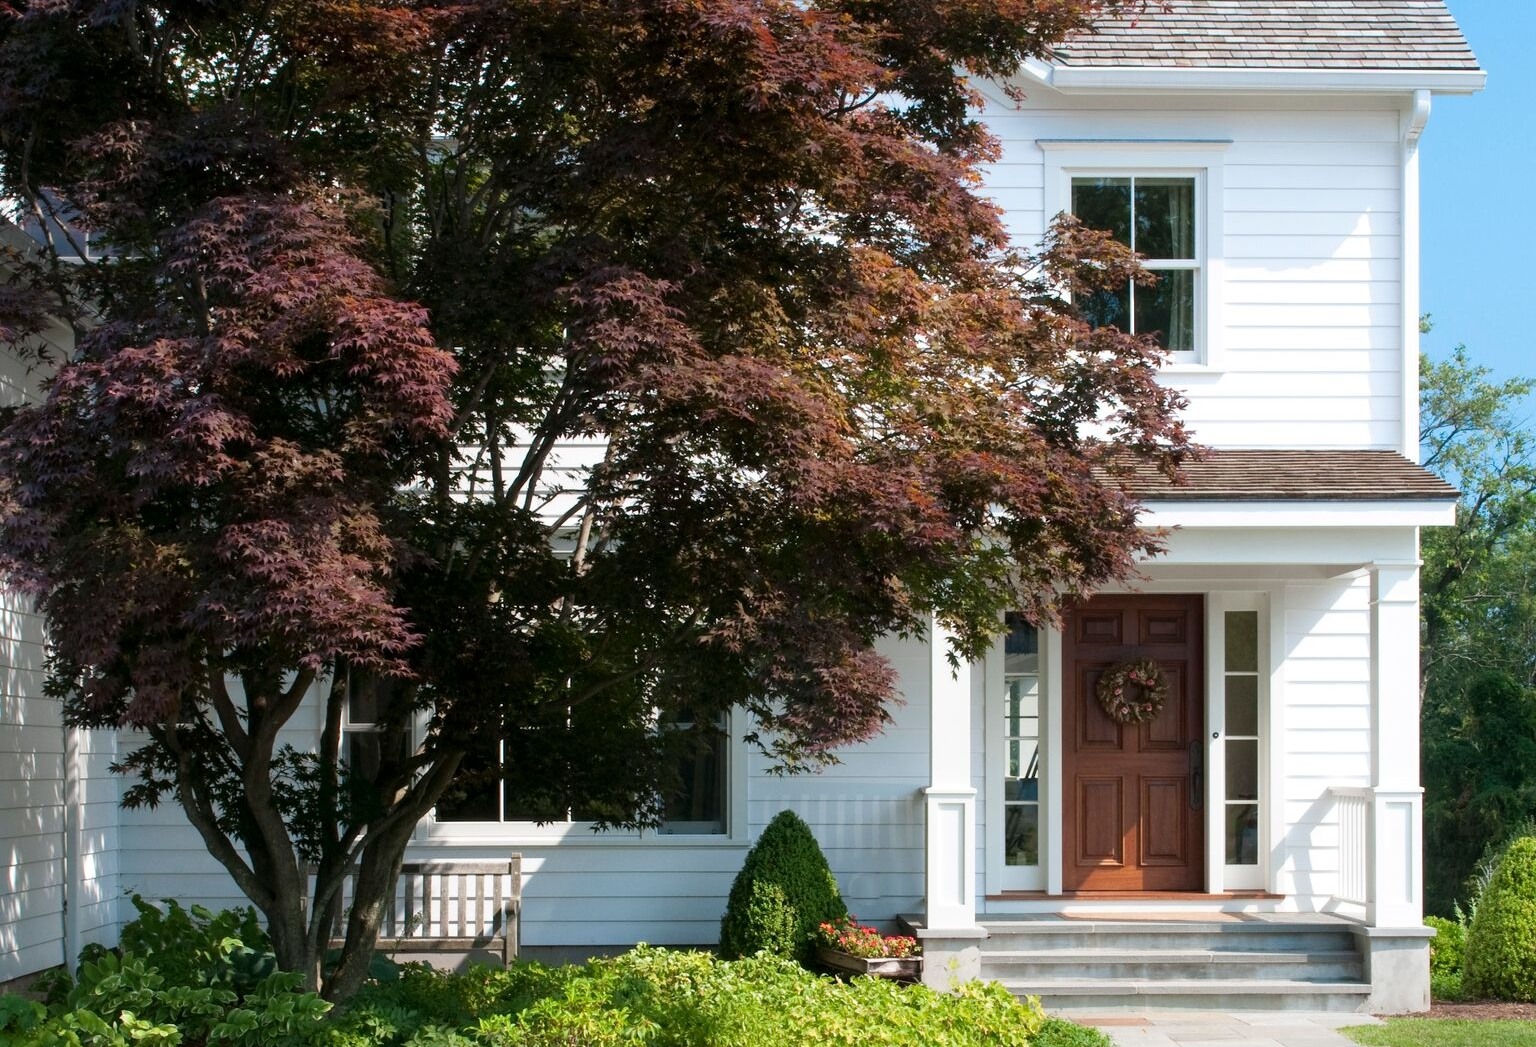 7. BOOST THE CURB APPEAL •  As seen in  East Coast Home + Design